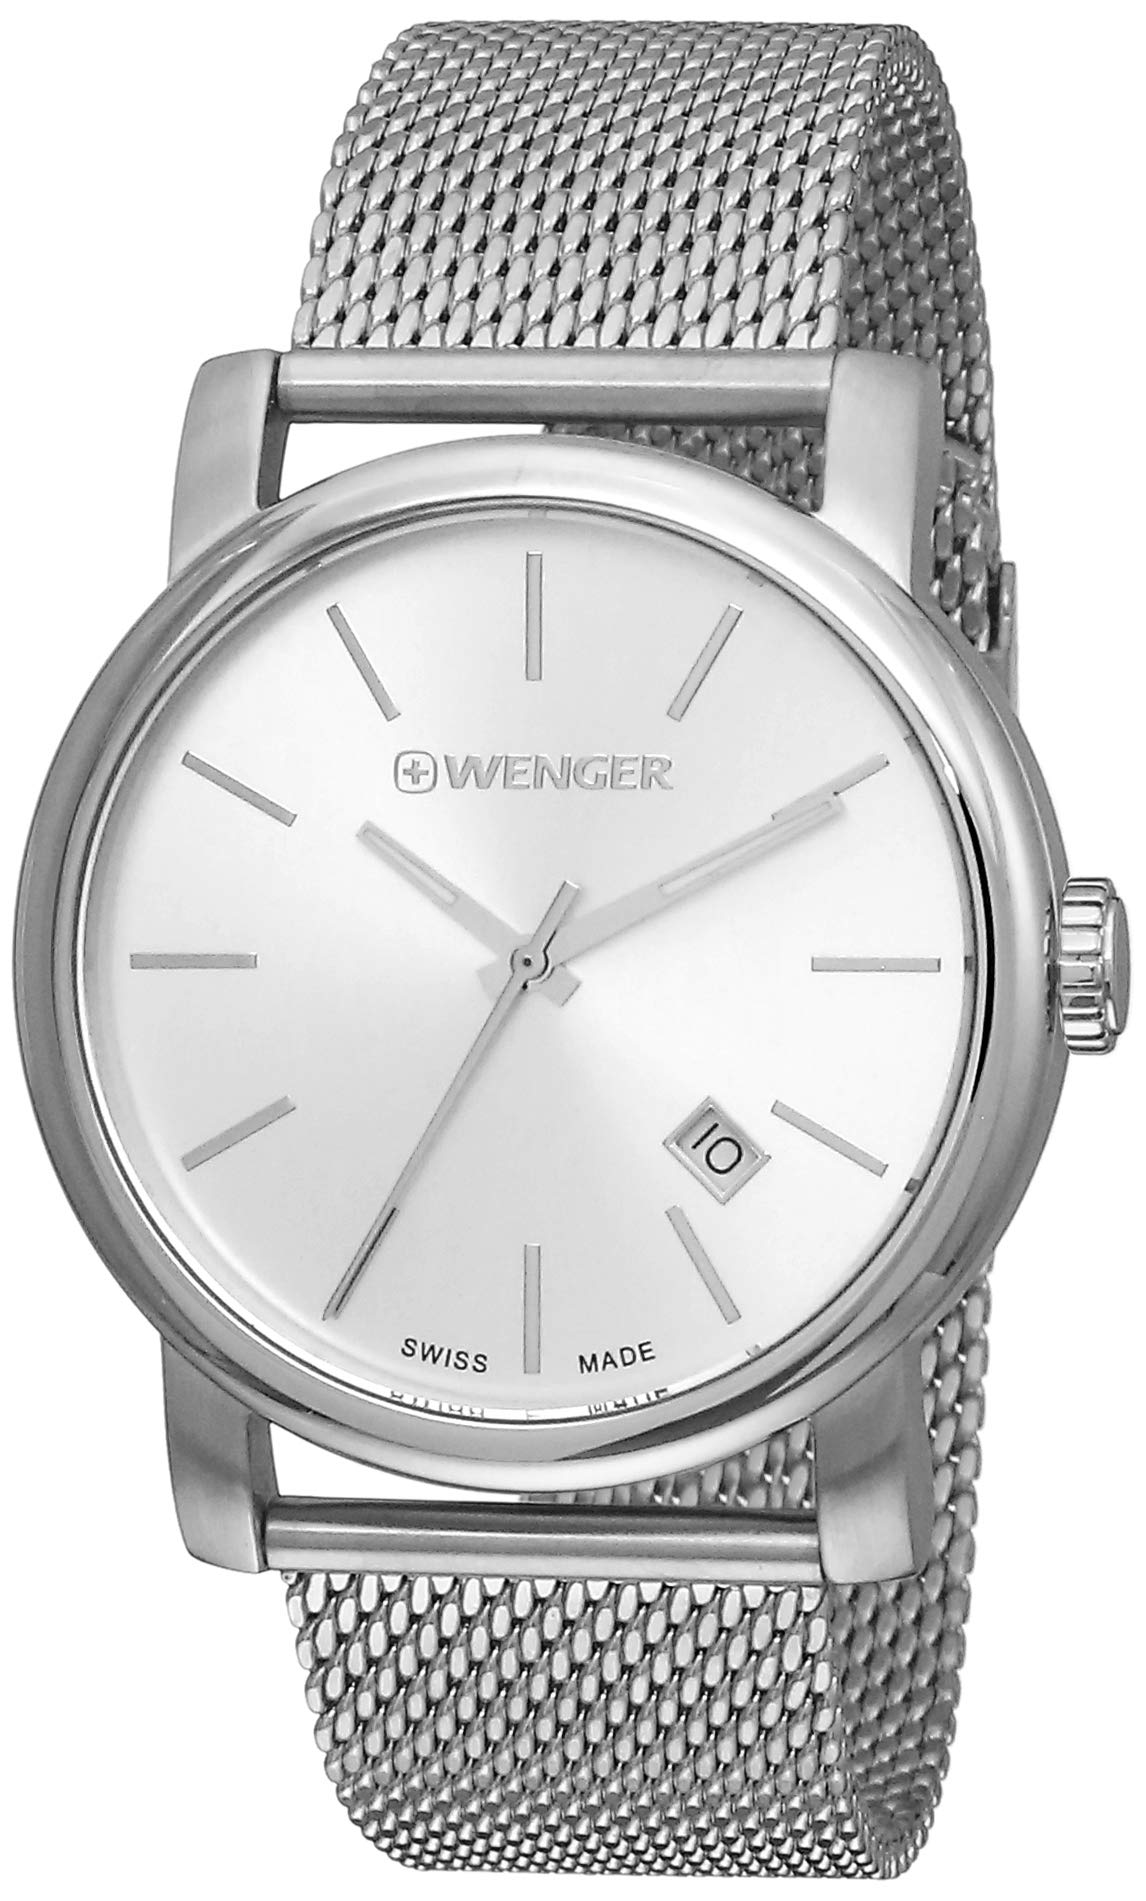 Wenger Men's Analogue Quartz Watch with Stainless Steel Strap 01.1041.121